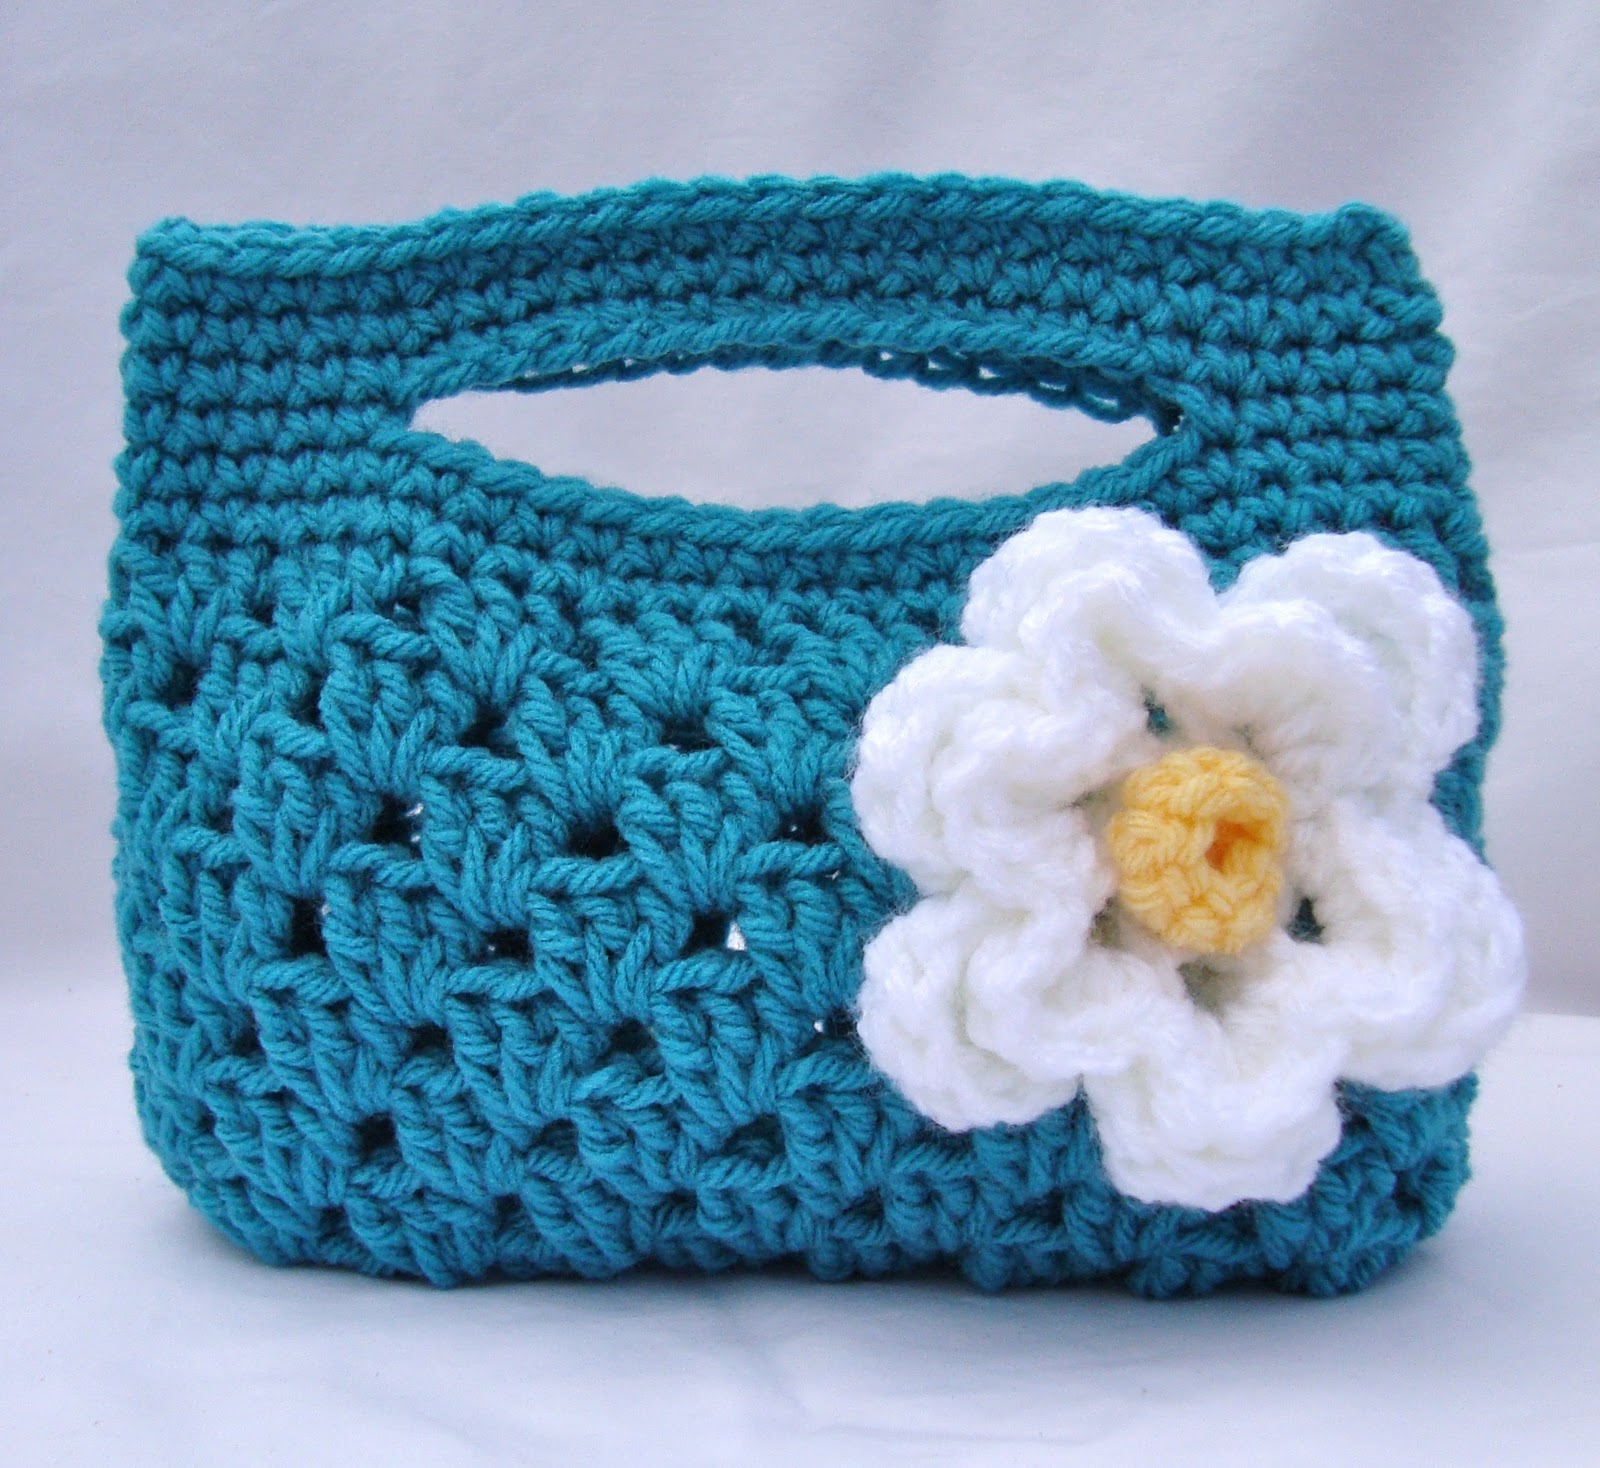 Small Bag Crochet Pattern : tangled happy: Granny Stripe Boutique Bag